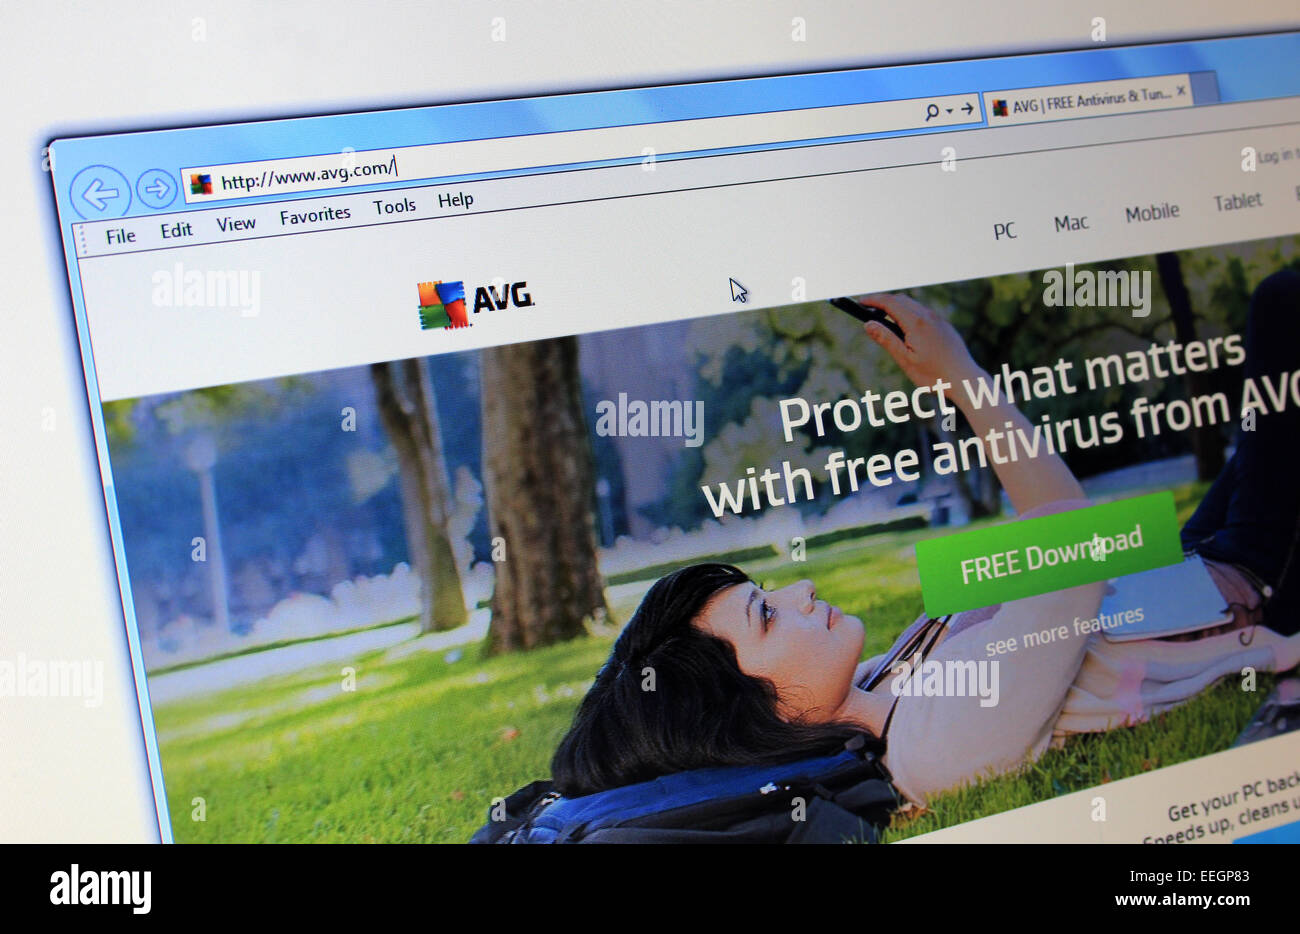 AVG antivirus website - Stock Image